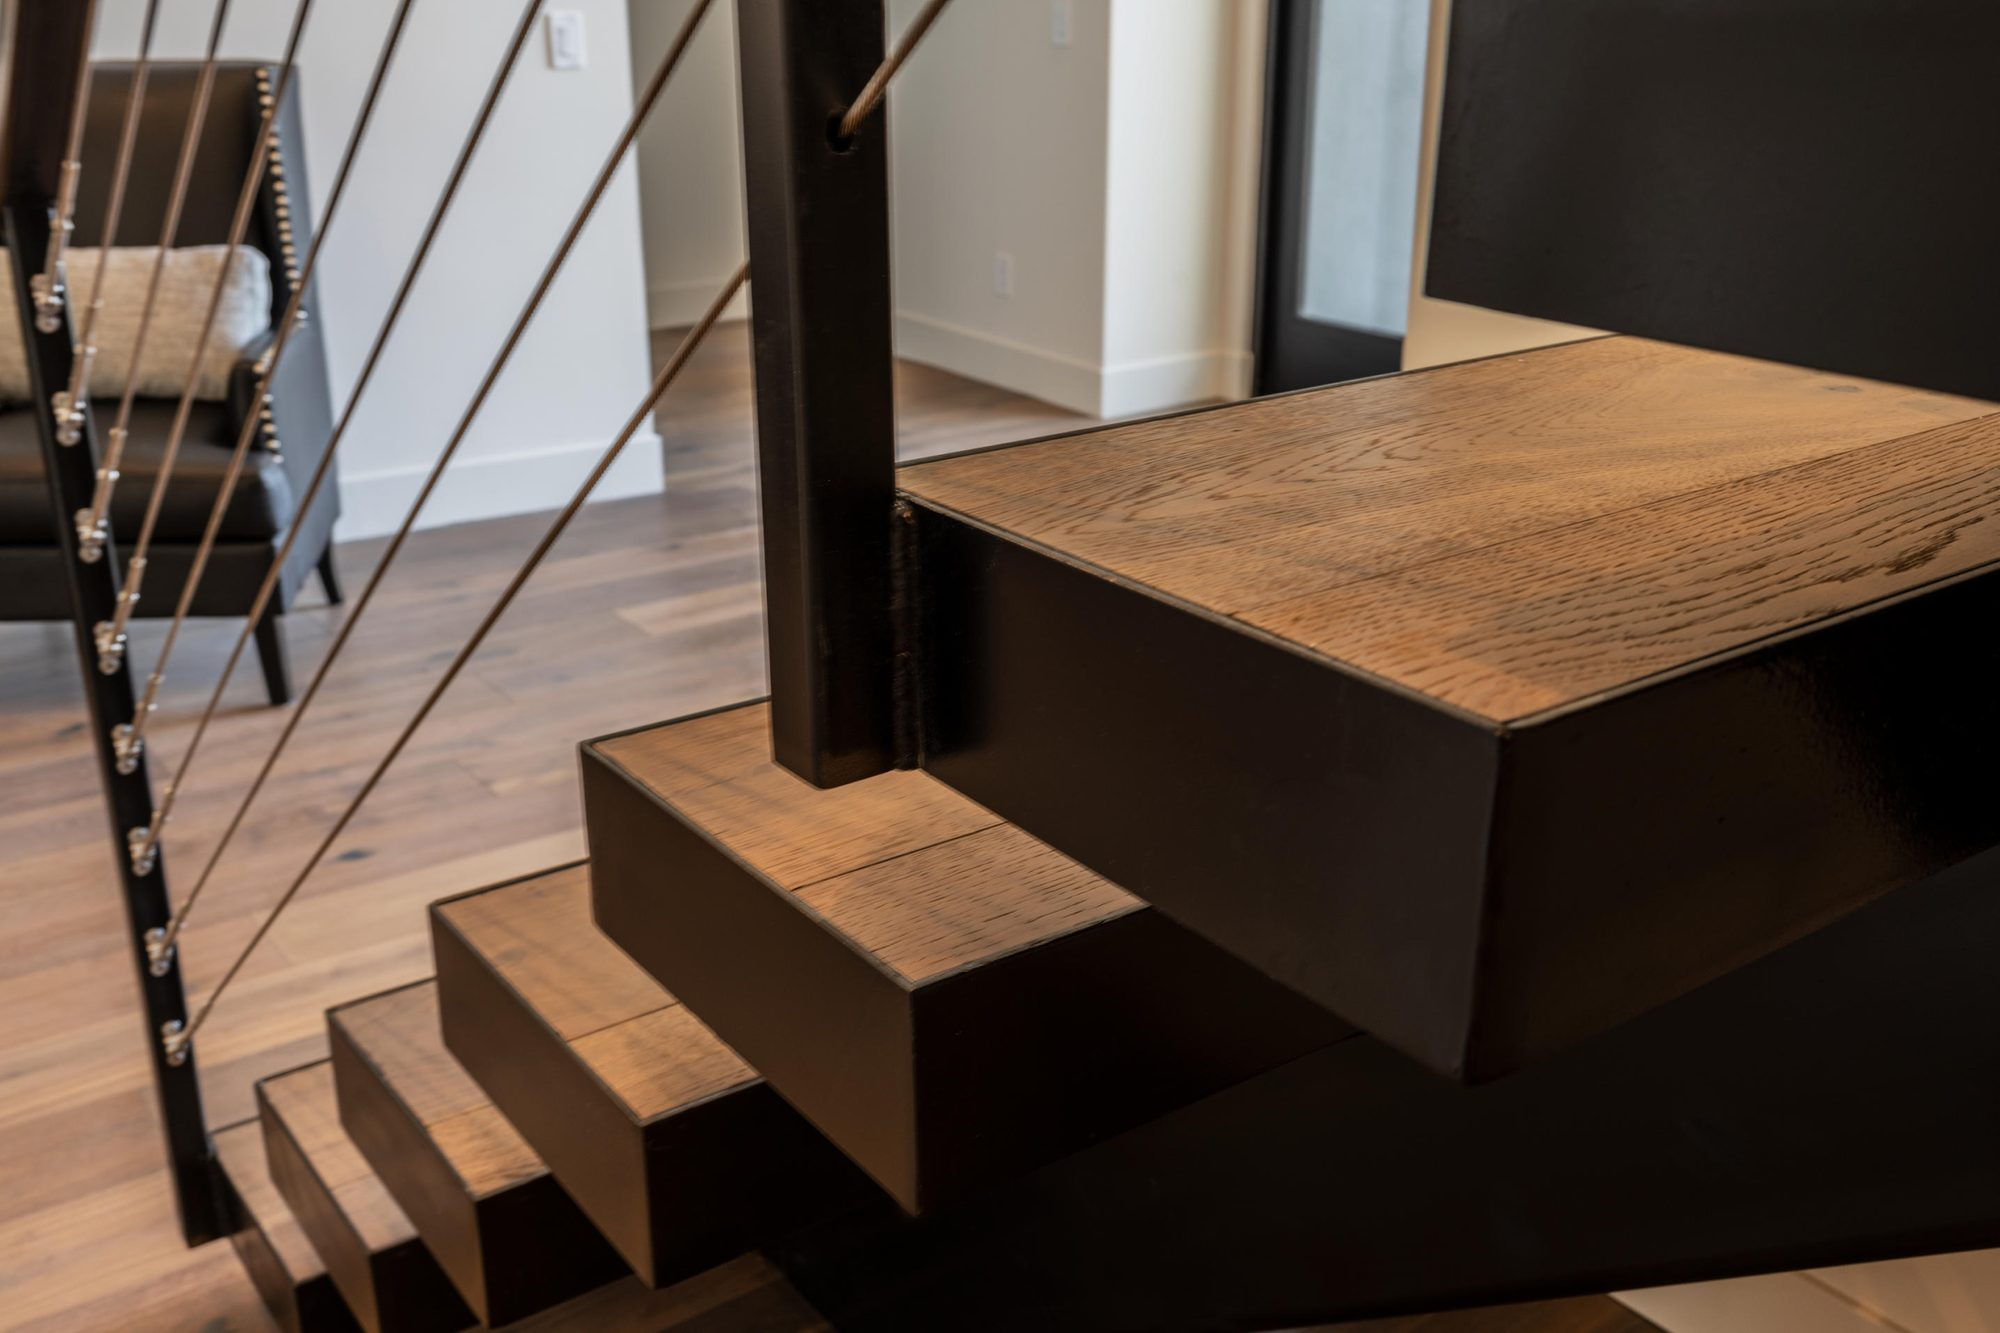 Modern staircase made with black metal and real wood. Metal and wire railings.